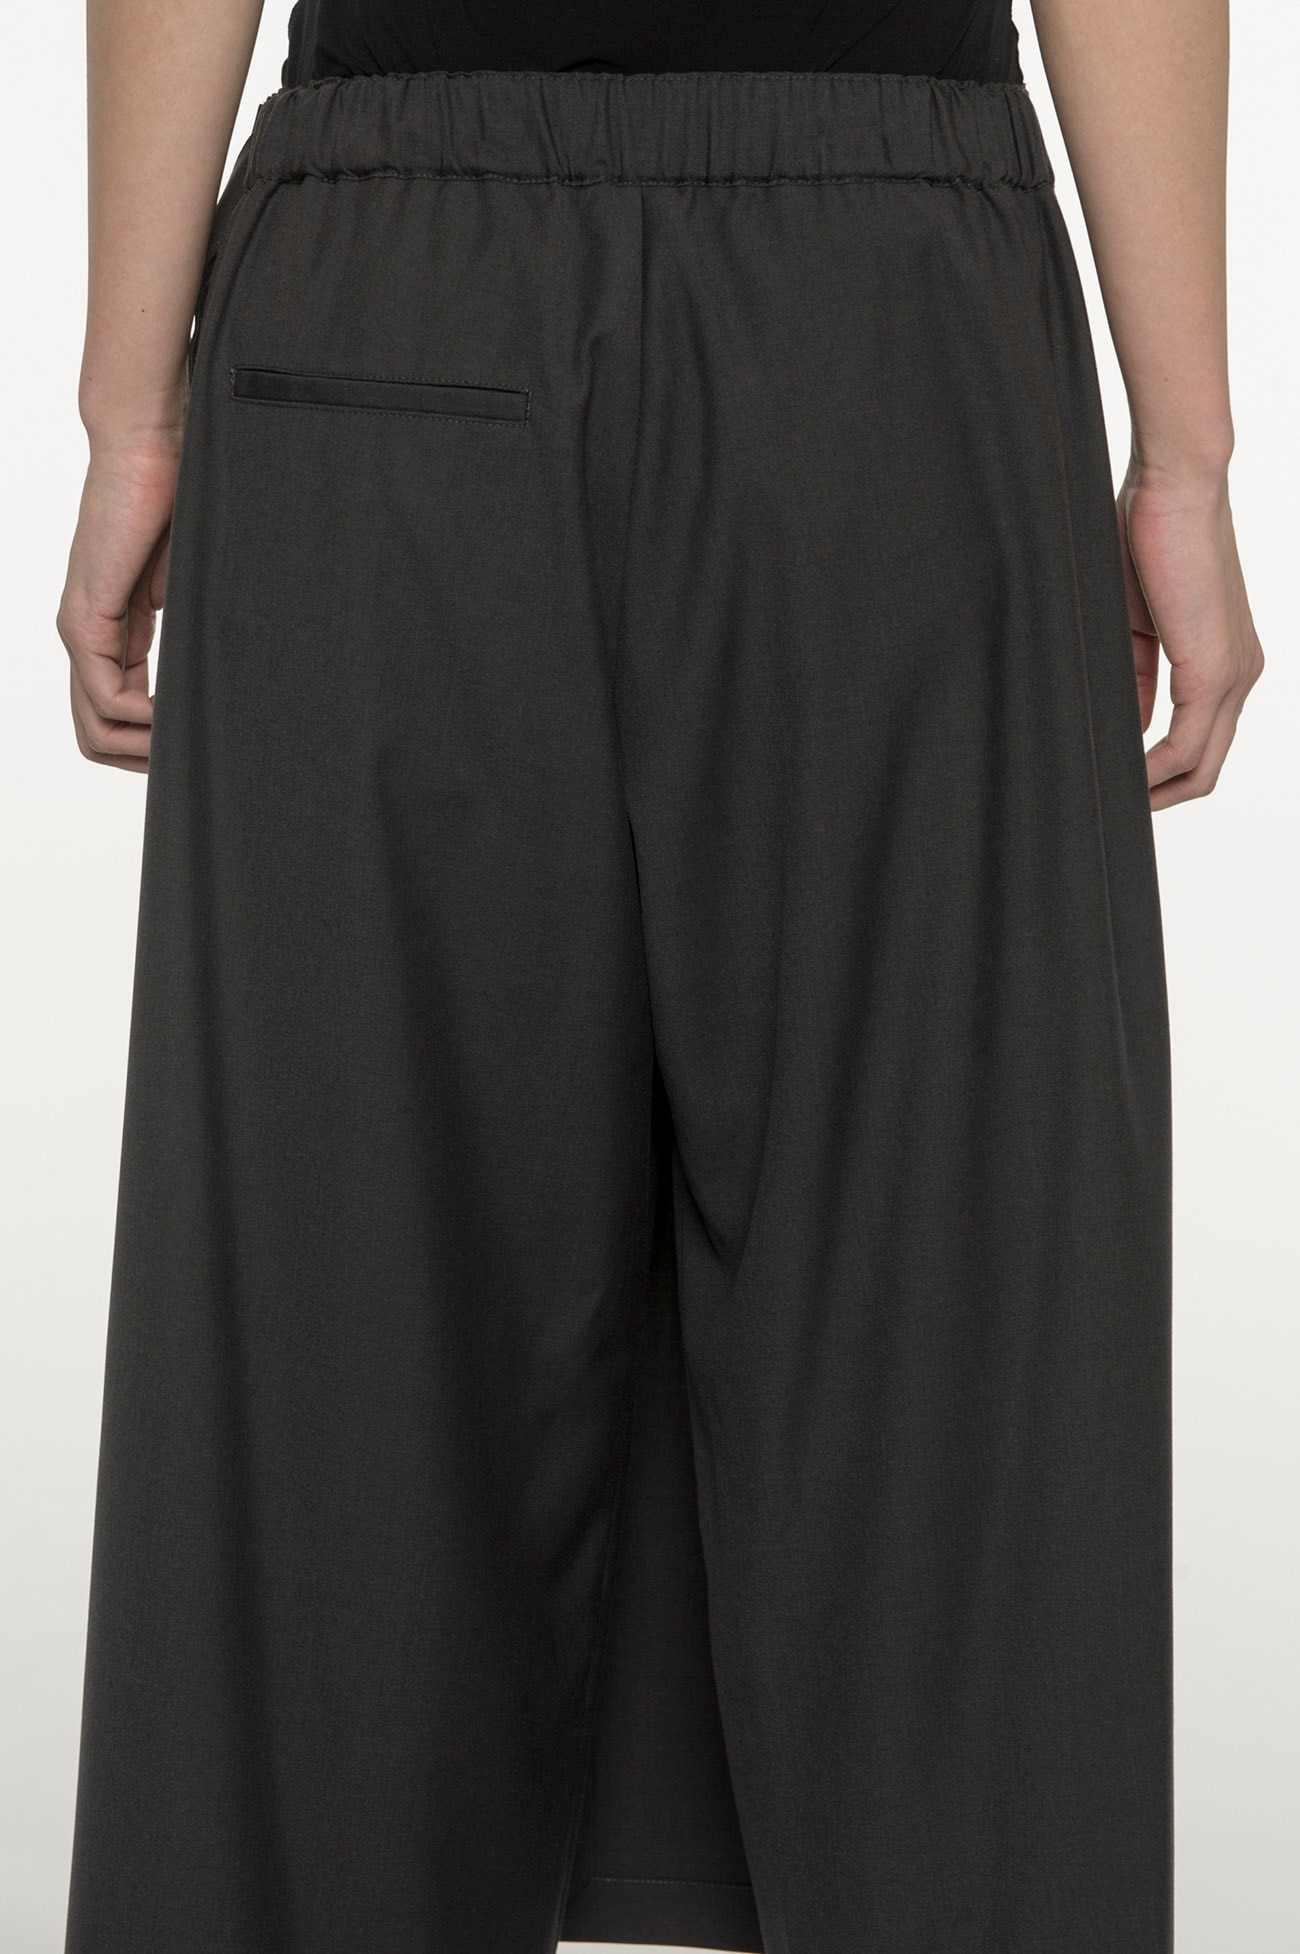 RISMATbyY's Polyester Rayon Clear Twill Pleated Wide Pants